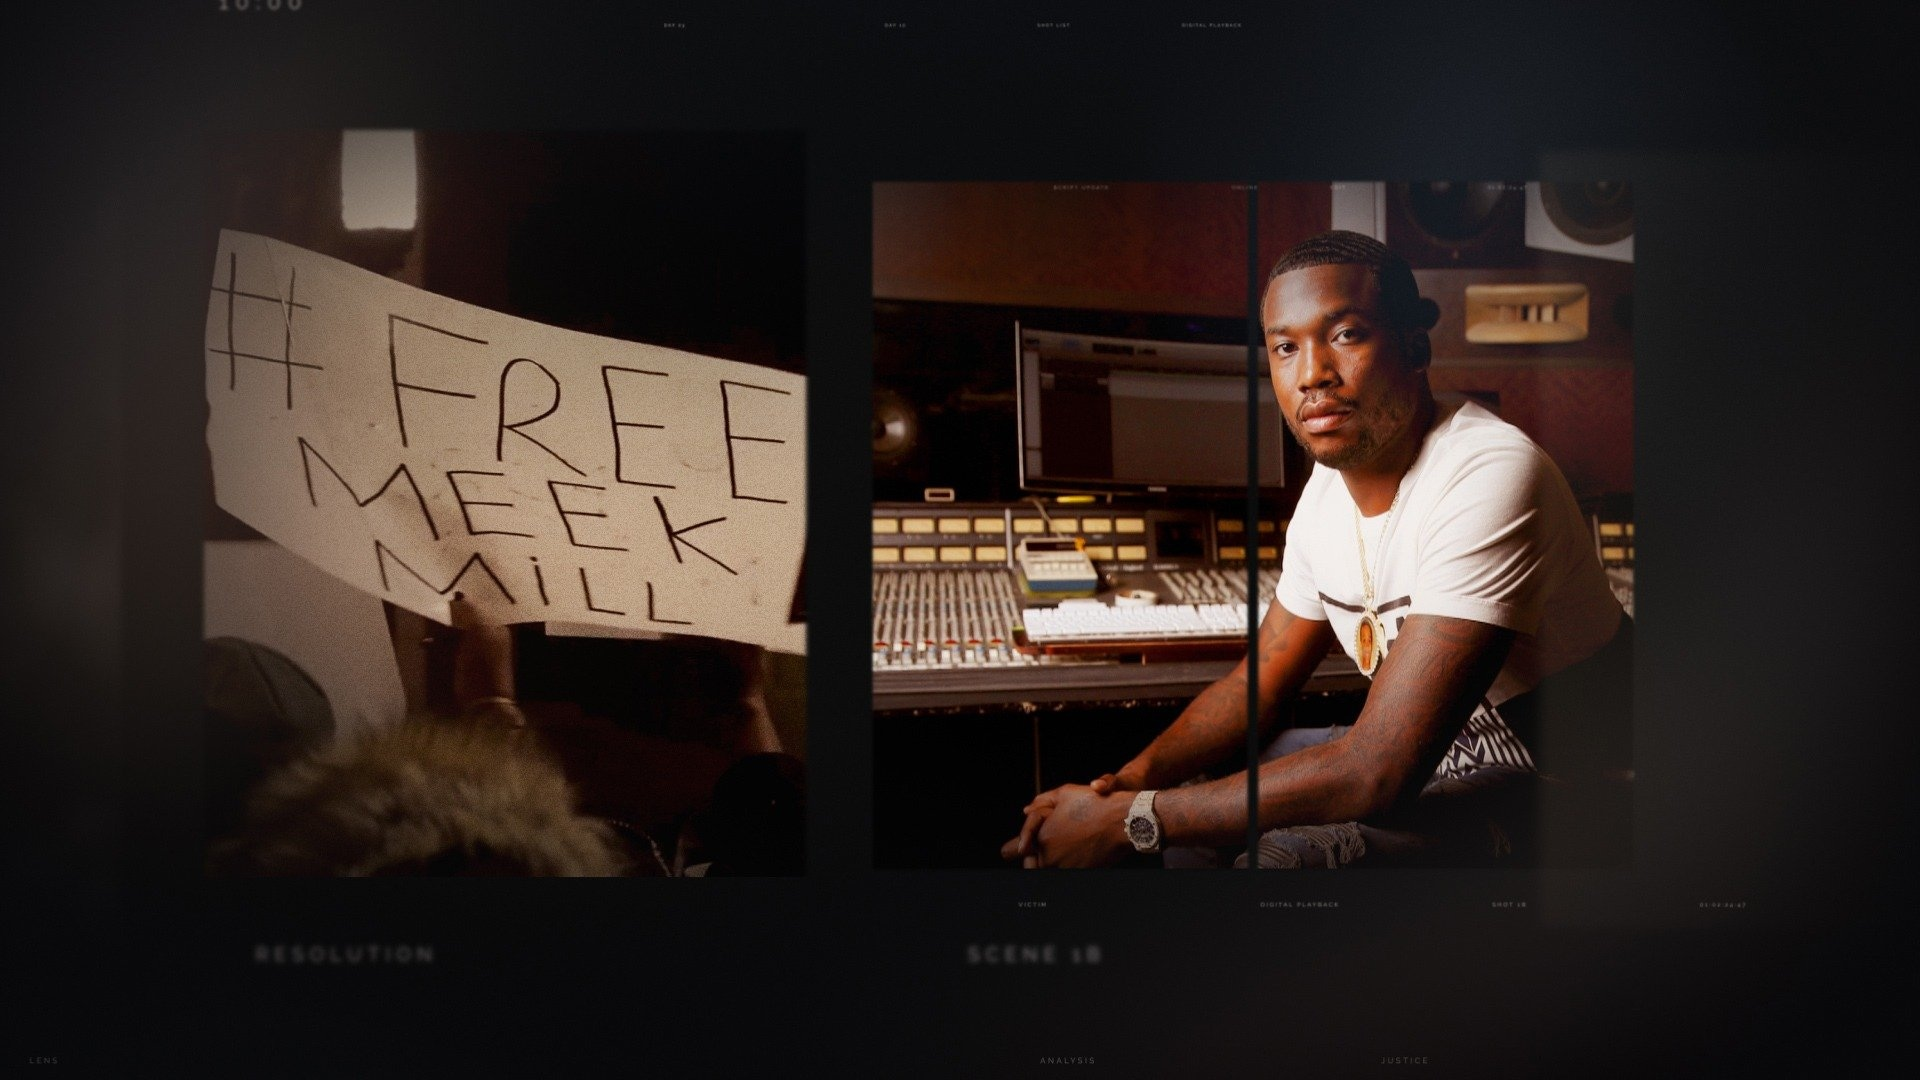 Dreams and Nightmares: The Meek Mill Story